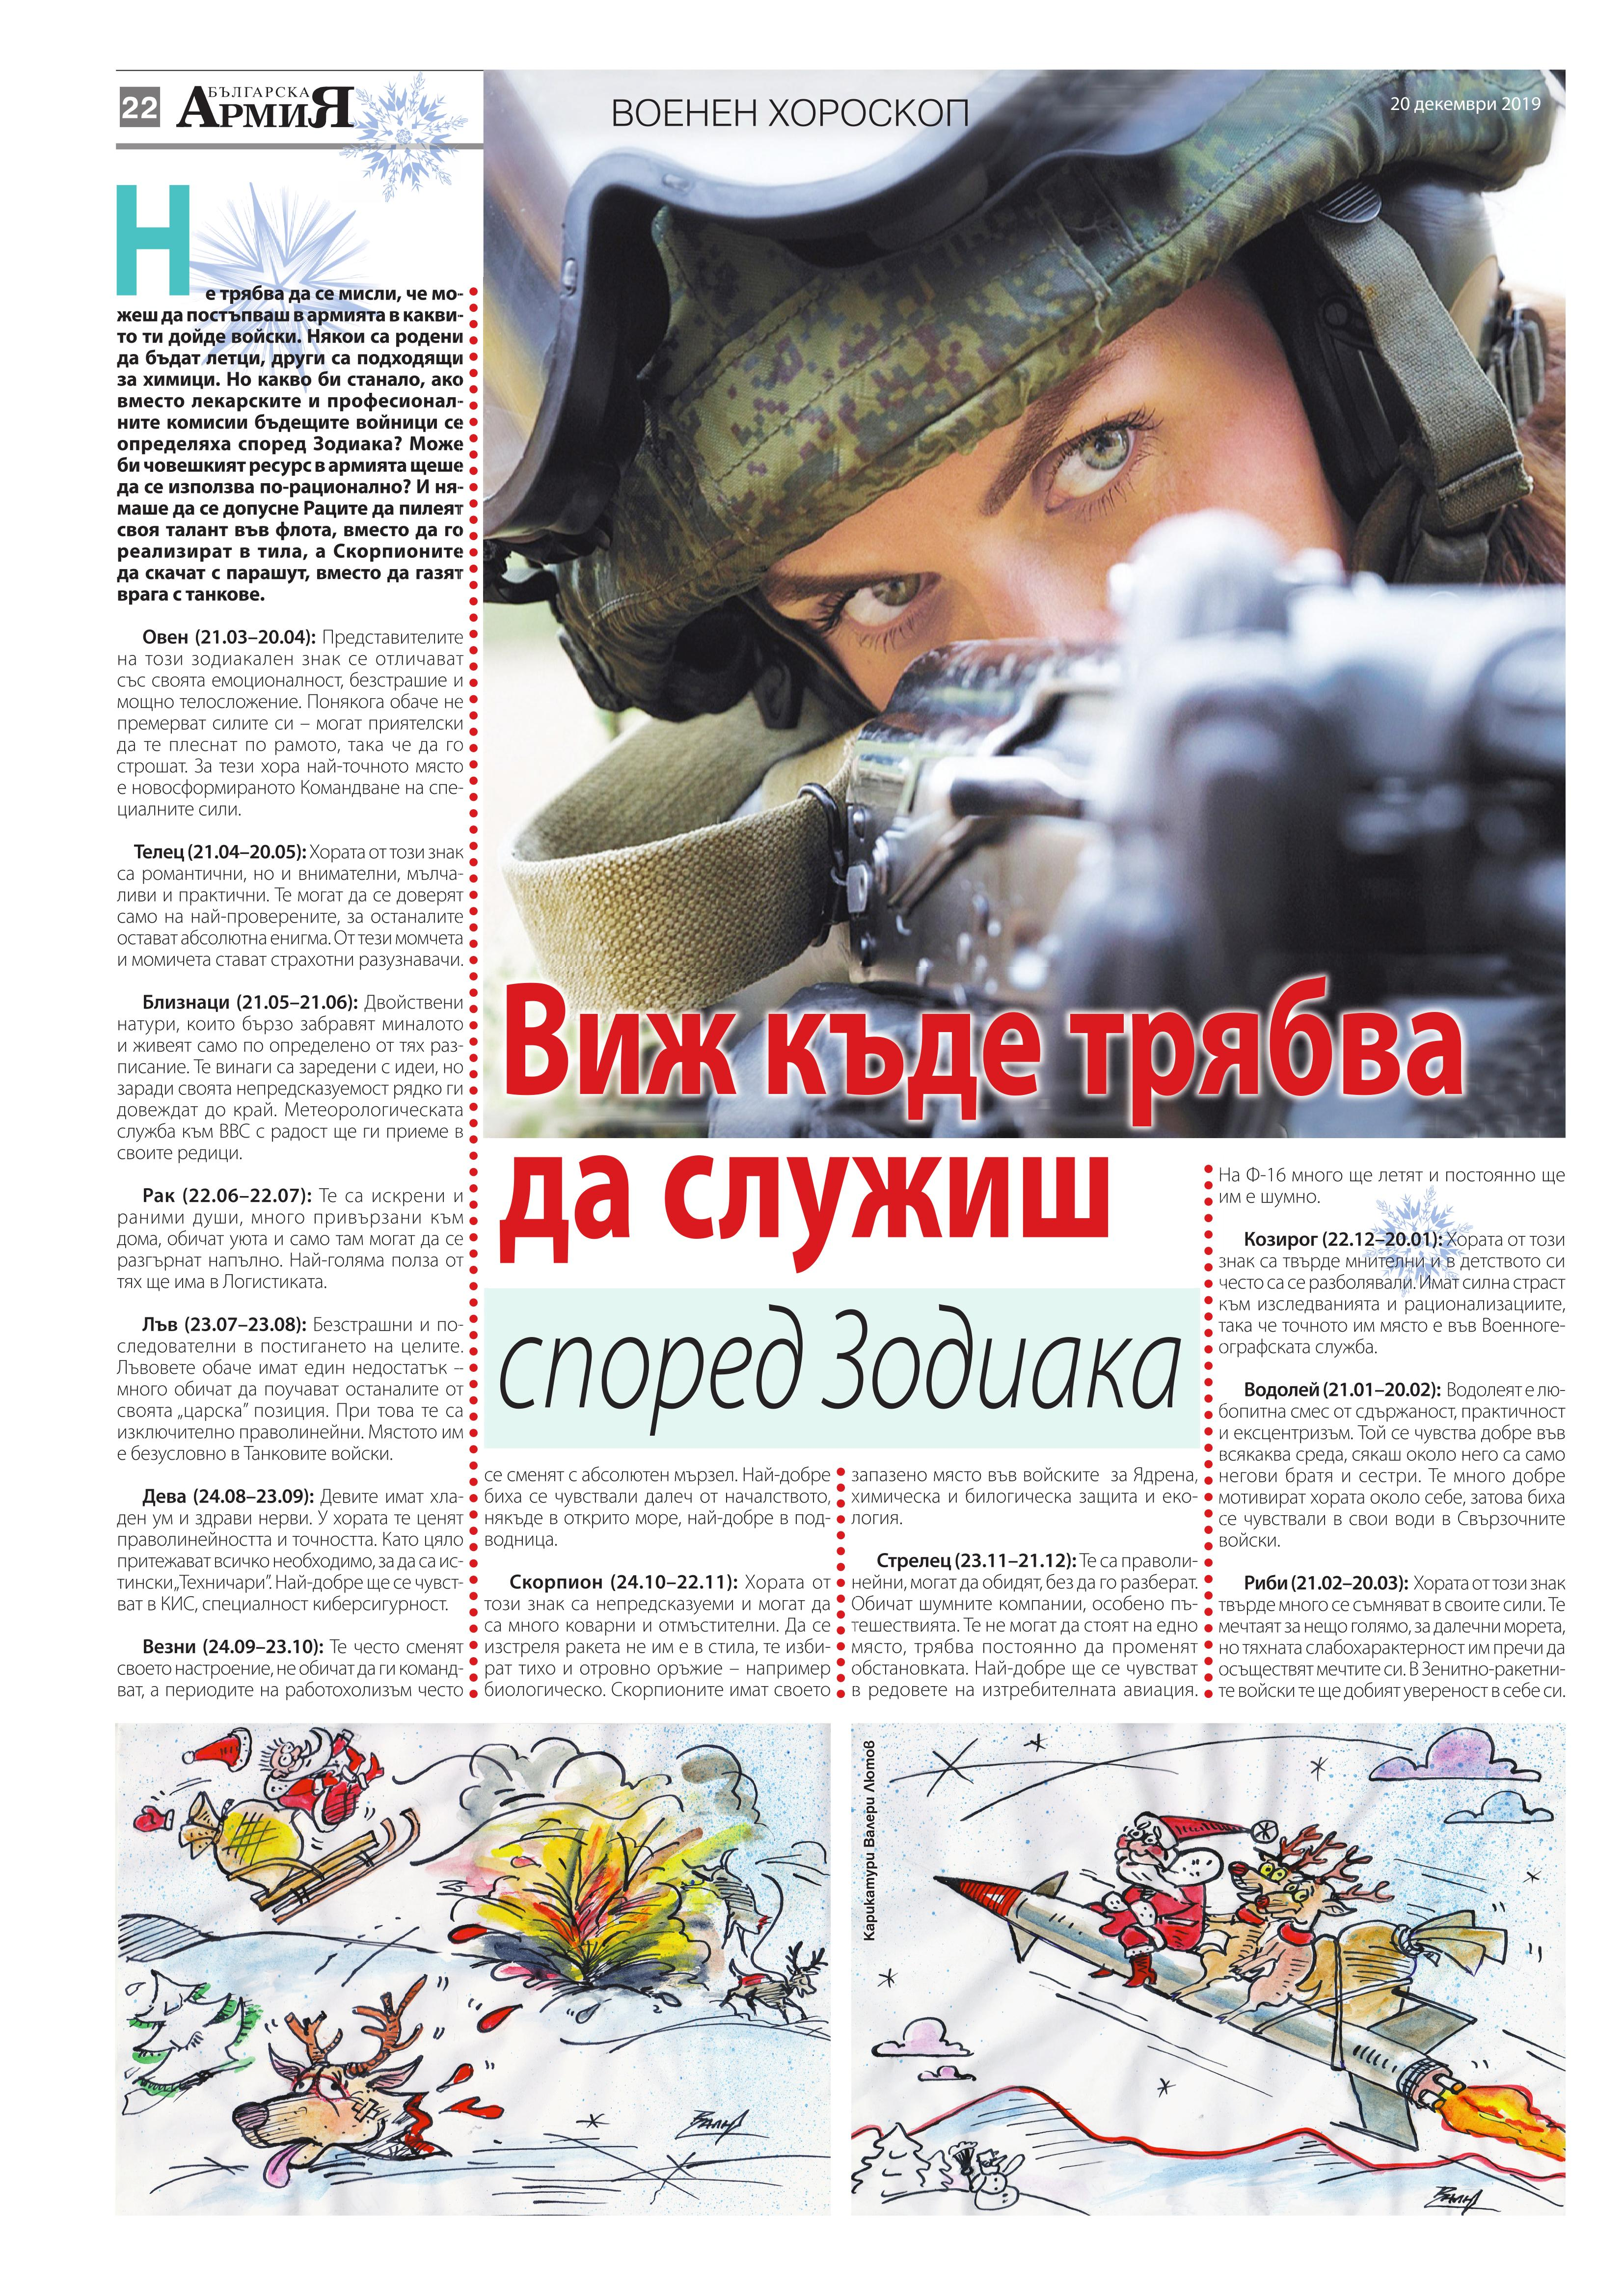 https://armymedia.bg/wp-content/uploads/2015/06/22.page1_-120.jpg